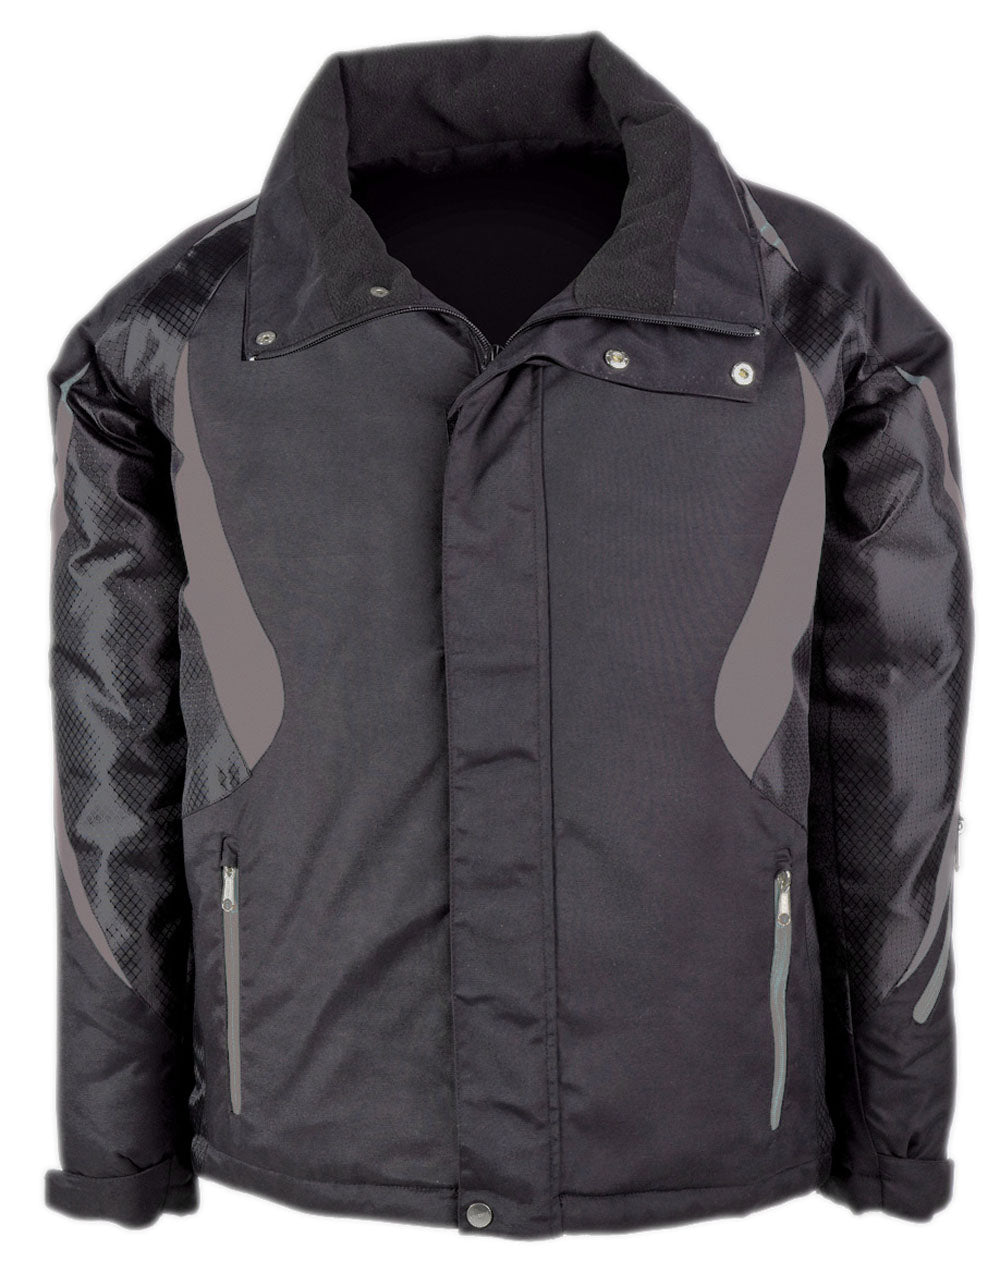 Chicane Jacket